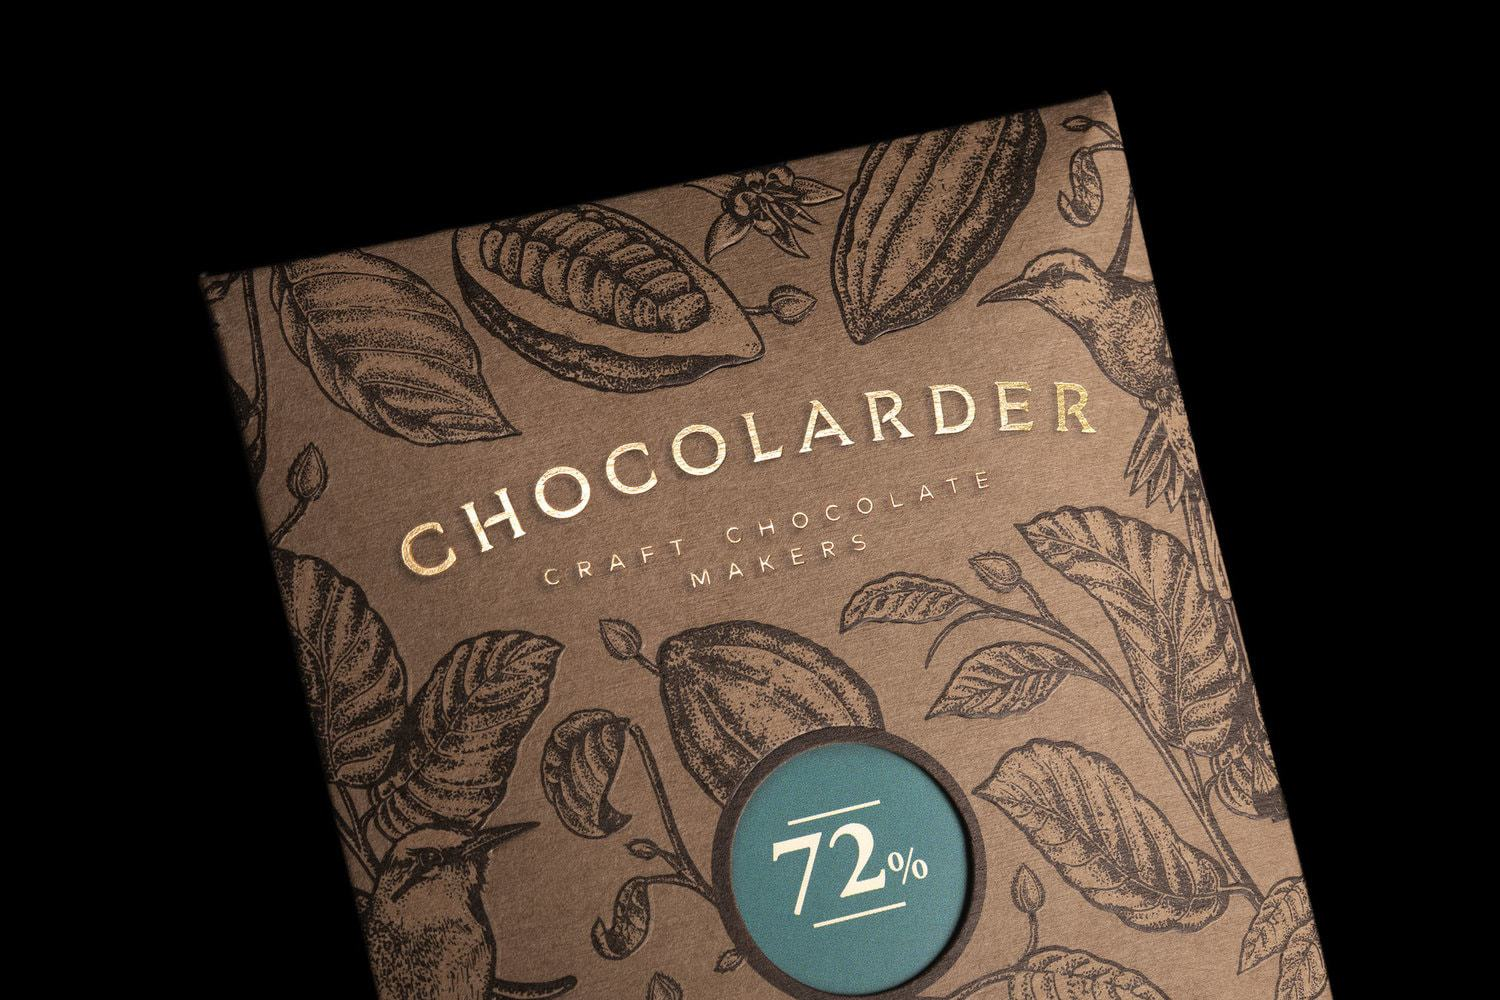 Sustainability Meets Luxury in This Craft Chocolate Packaging